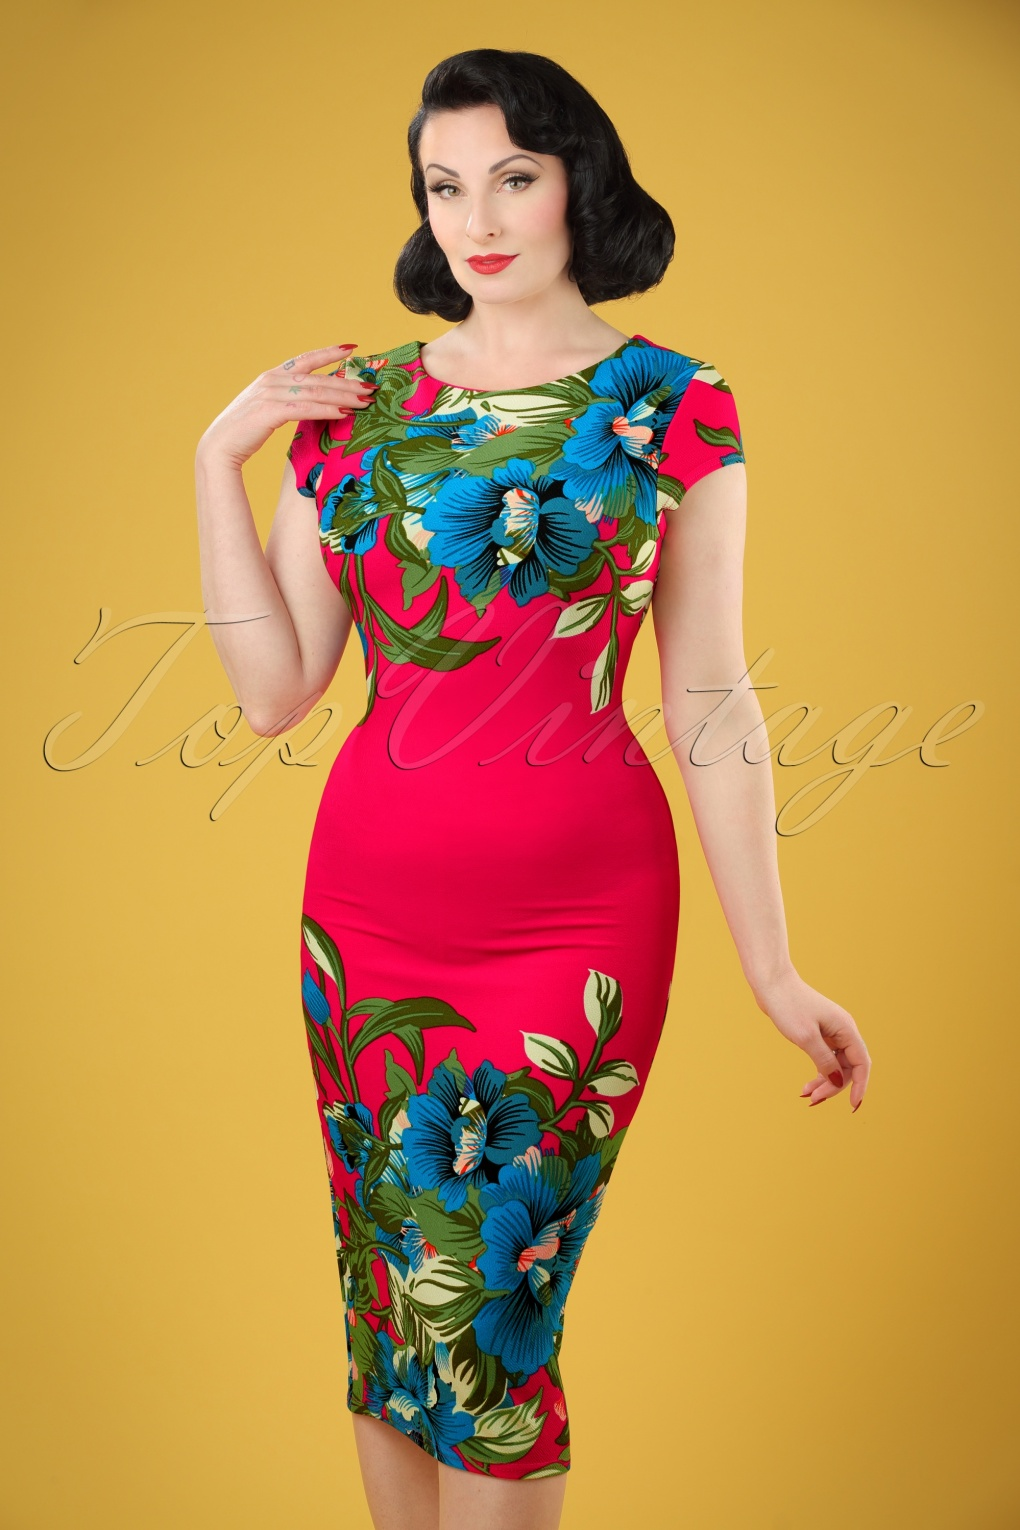 1960s Dresses – A Rainbow of 50 Dresses (Pictures) 60s Aloha Tropical Garden Short Sleeves Pencil Dress in Hot Pink £34.94 AT vintagedancer.com